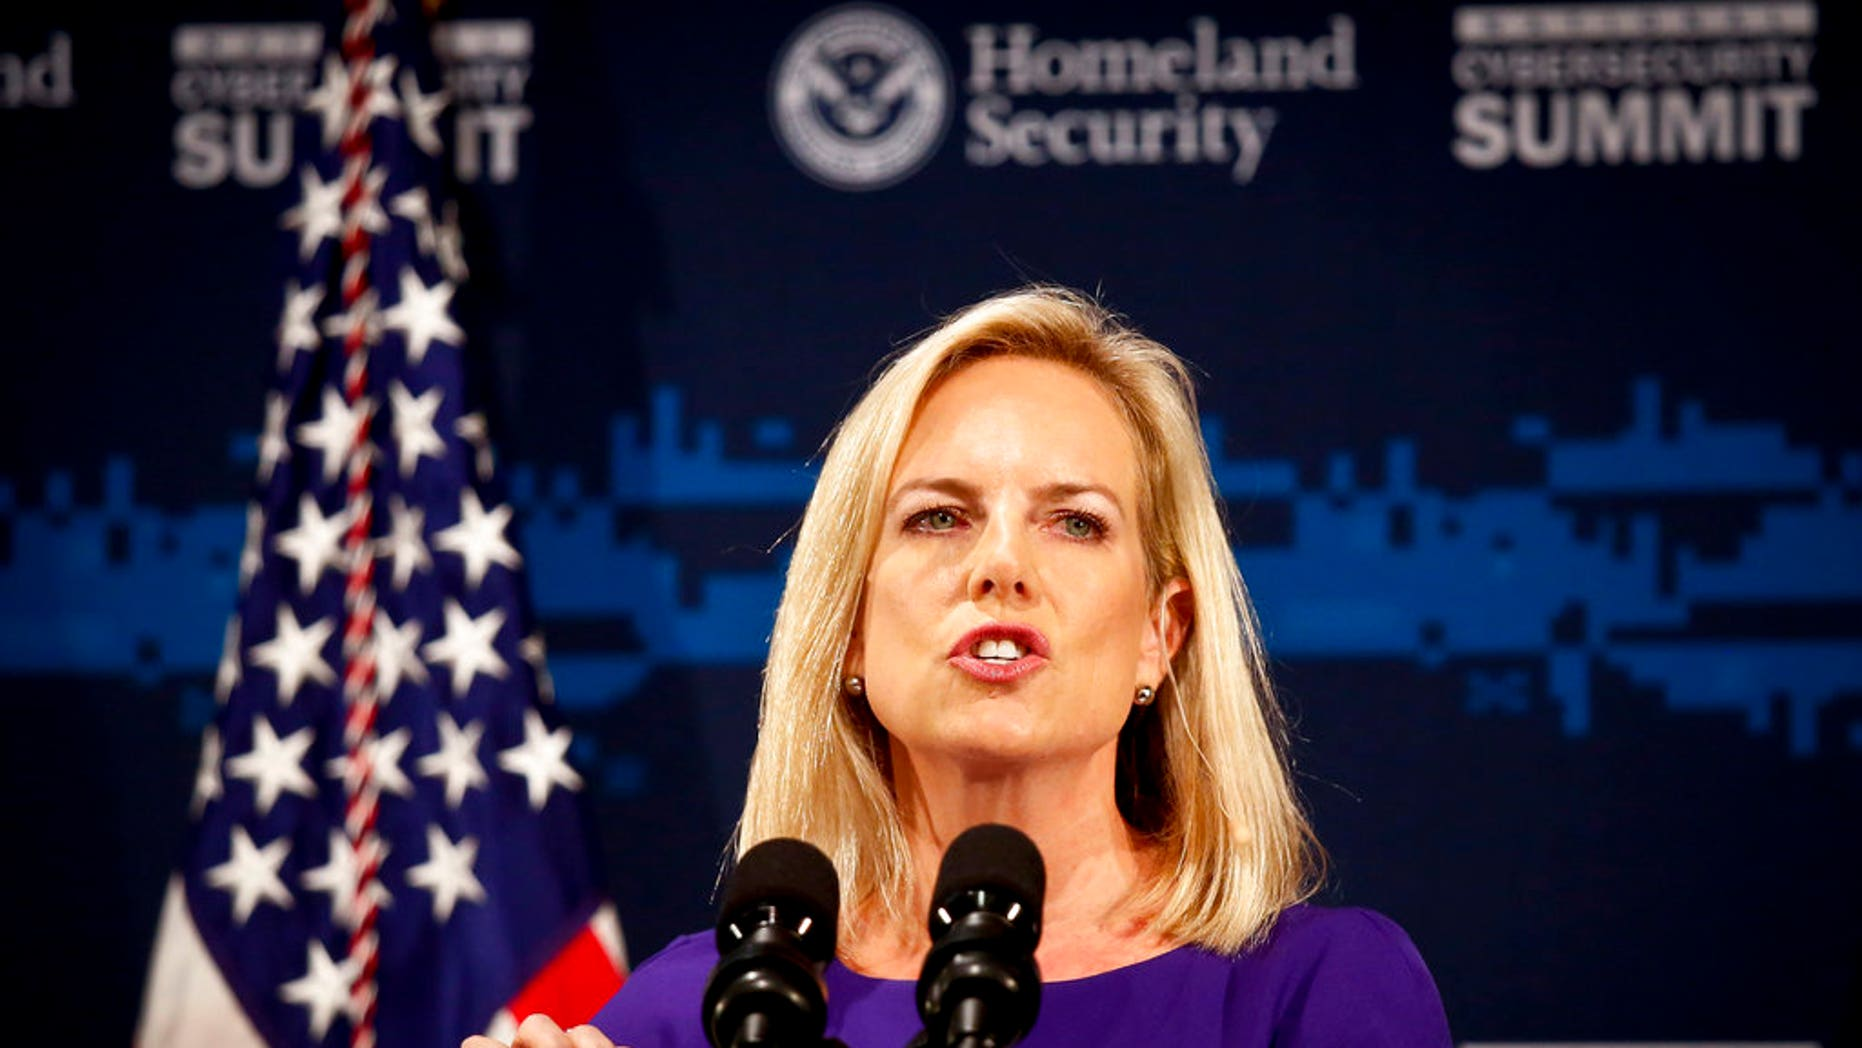 Secretary of Homeland Security Kirstjen Nielsen addresses the Department of Homeland Security (DHS) National Cybersecurity Summit, July 31, 2018.